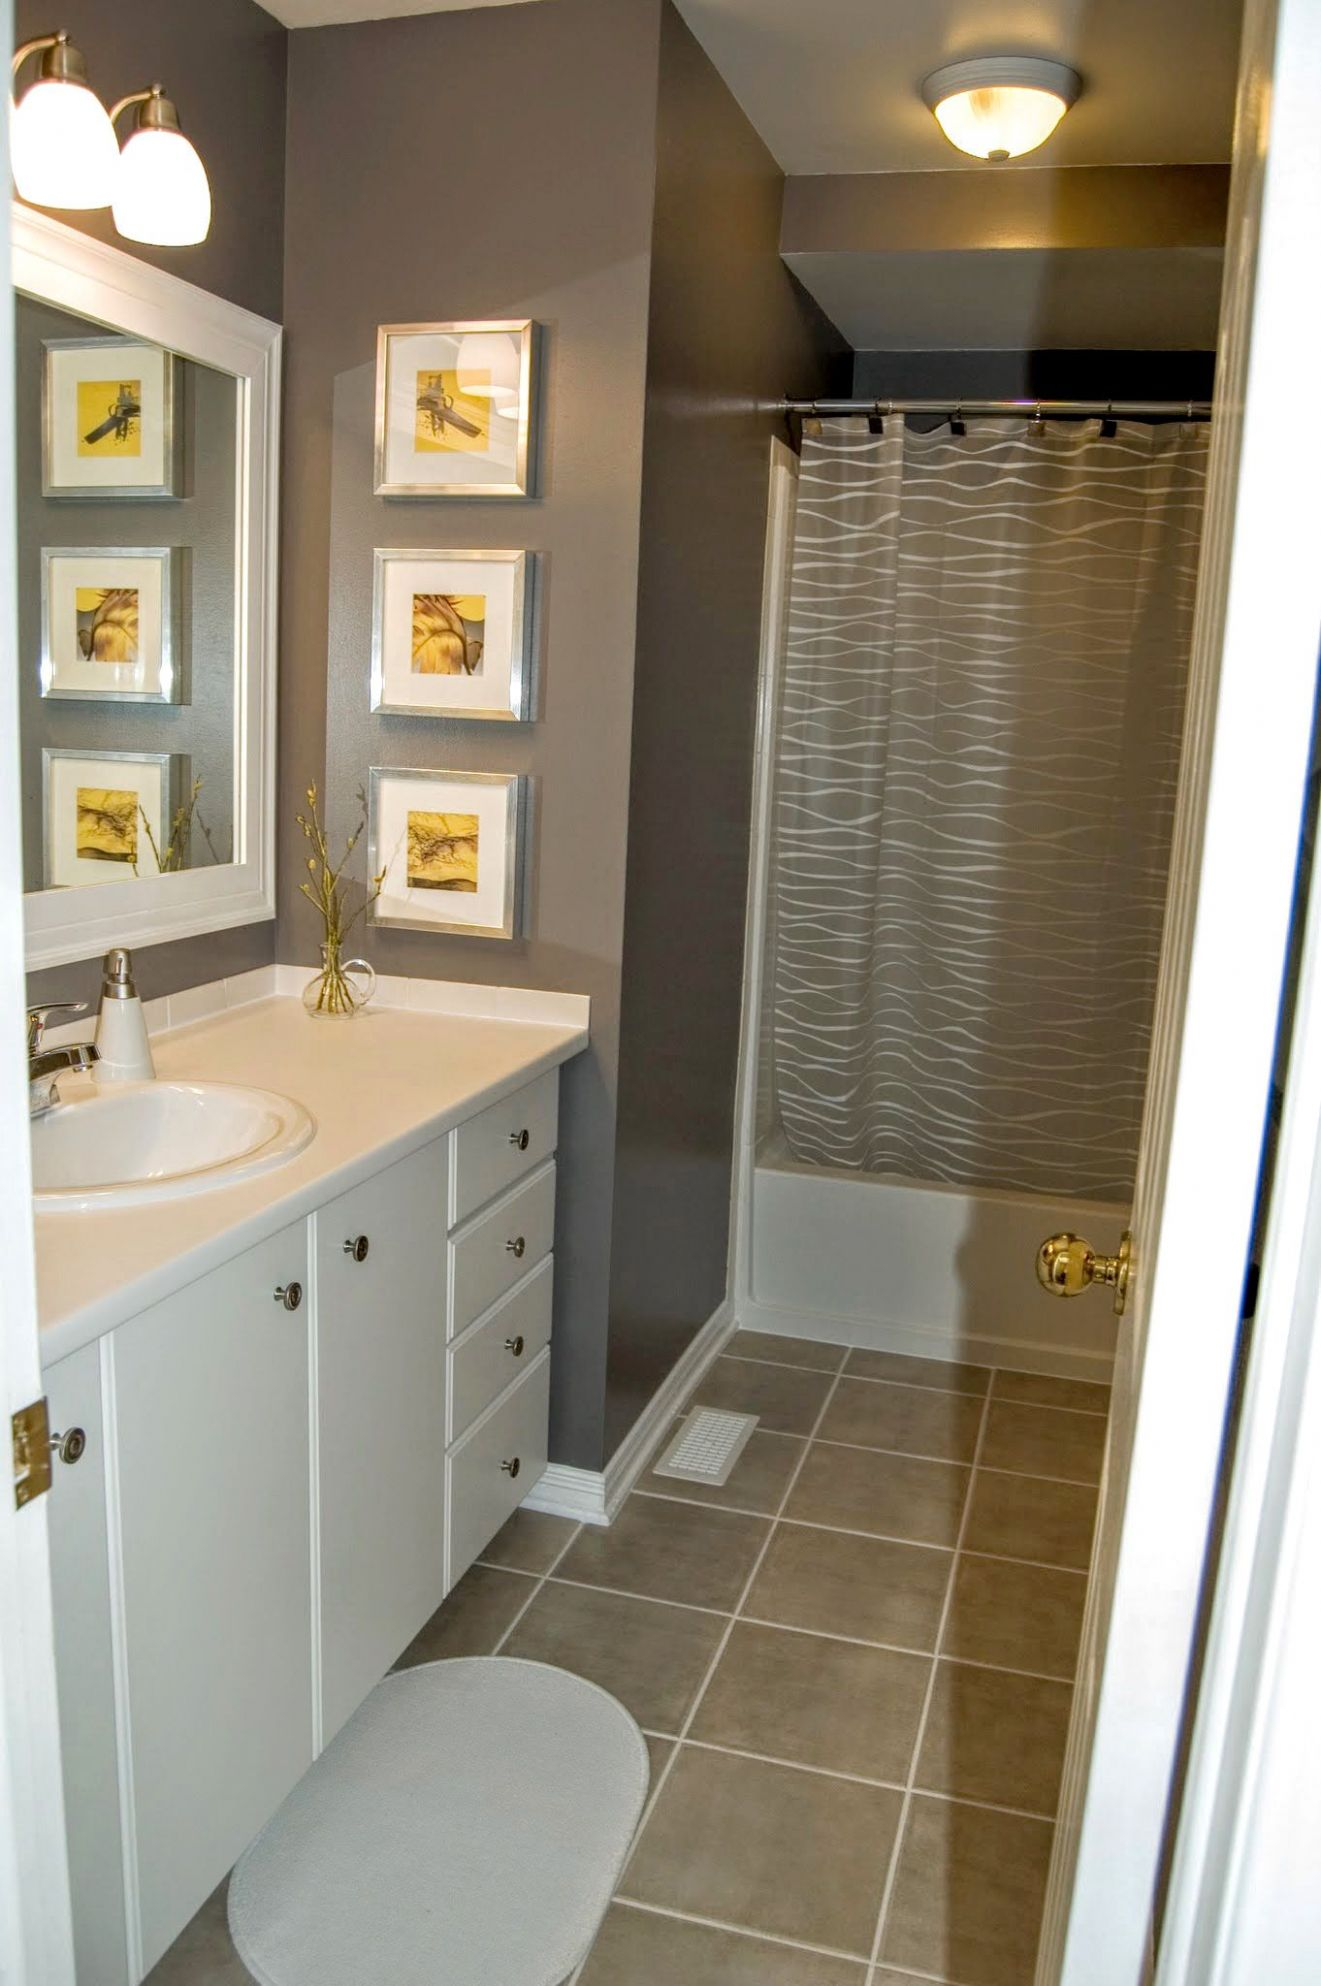 Gray bathroom with yellow accents, gray/yellow (With images ...